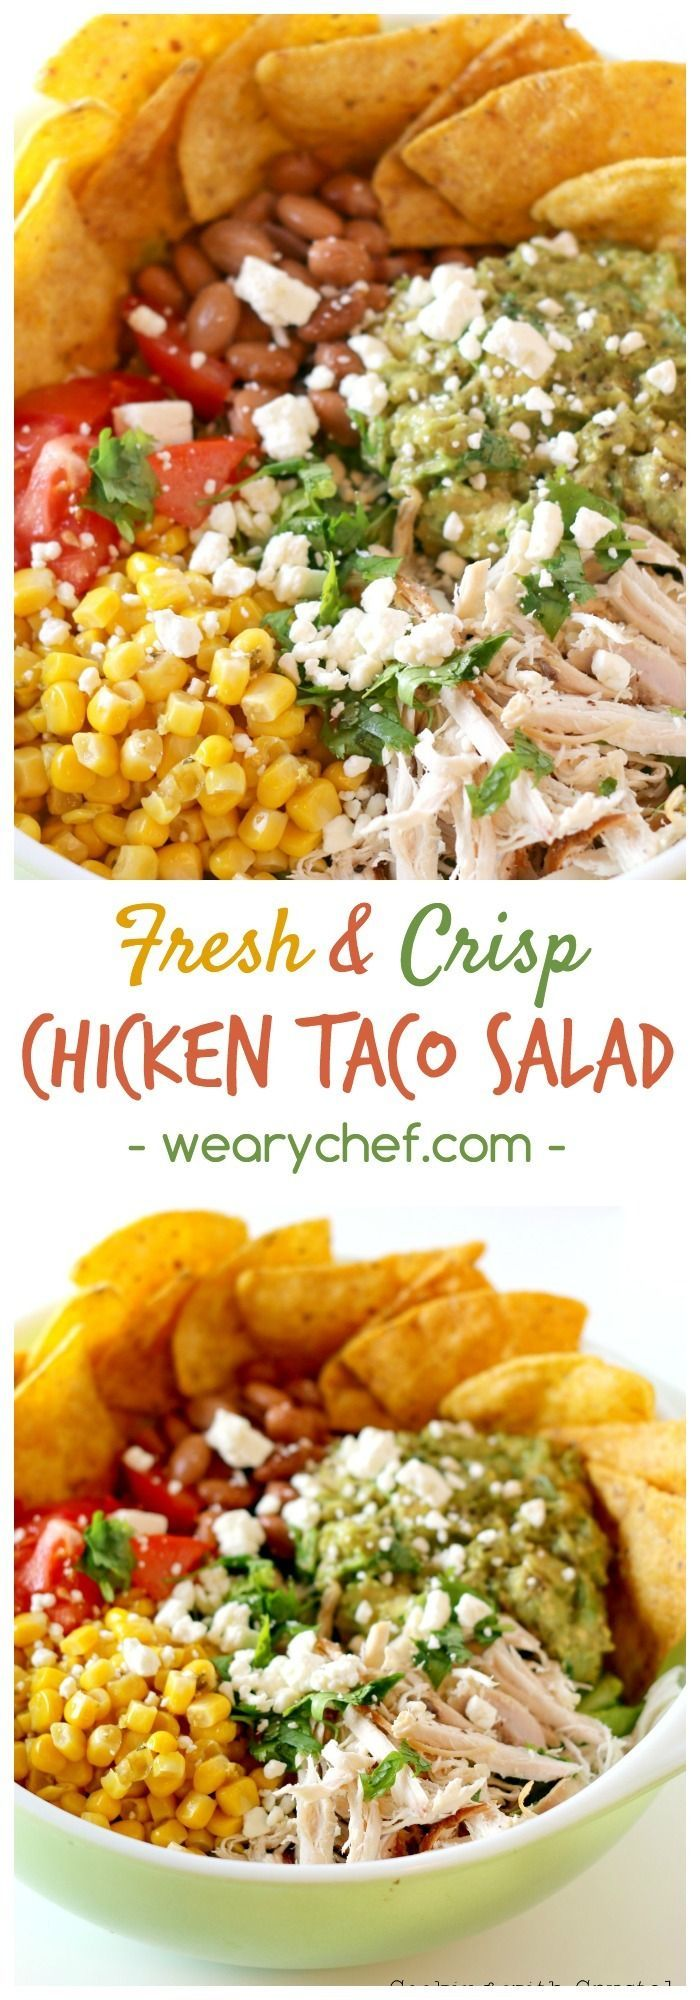 647 best salads and side dishes images on pinterest sauces snacks this fresh crisp chicken taco salad is a perfect summer dinner recipe forumfinder Choice Image